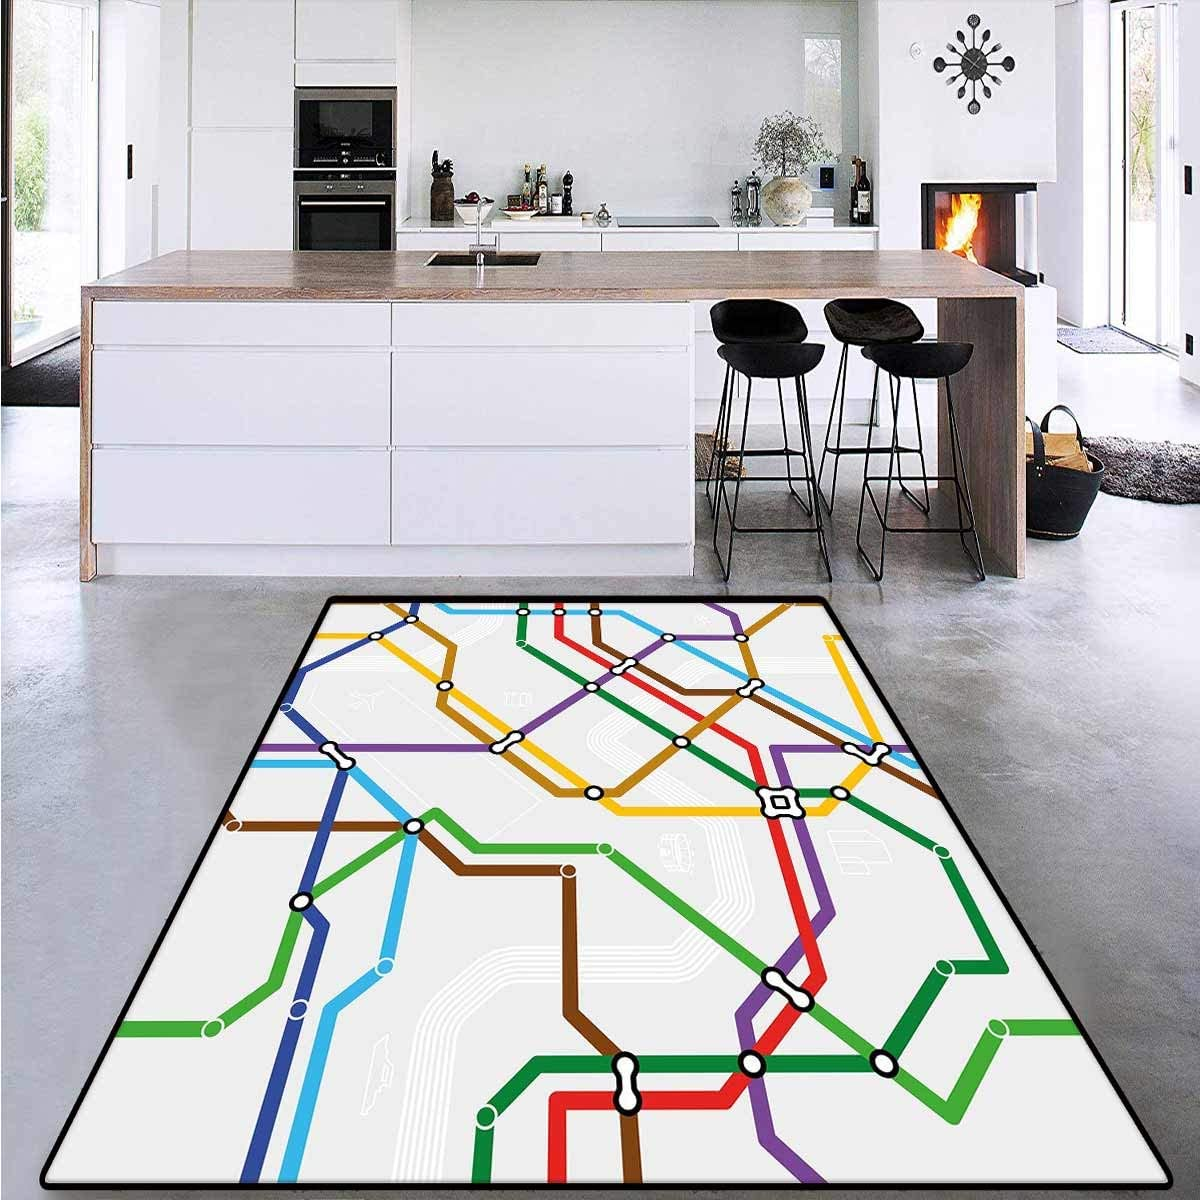 Map, Bath Mat 3D Digital Printing Mat, Stripes in Vibrant Colors Metro Scheme Subway Stations Abstract Railroad Transportation, Extra Large Area Rug 6' x 9' Multicolor